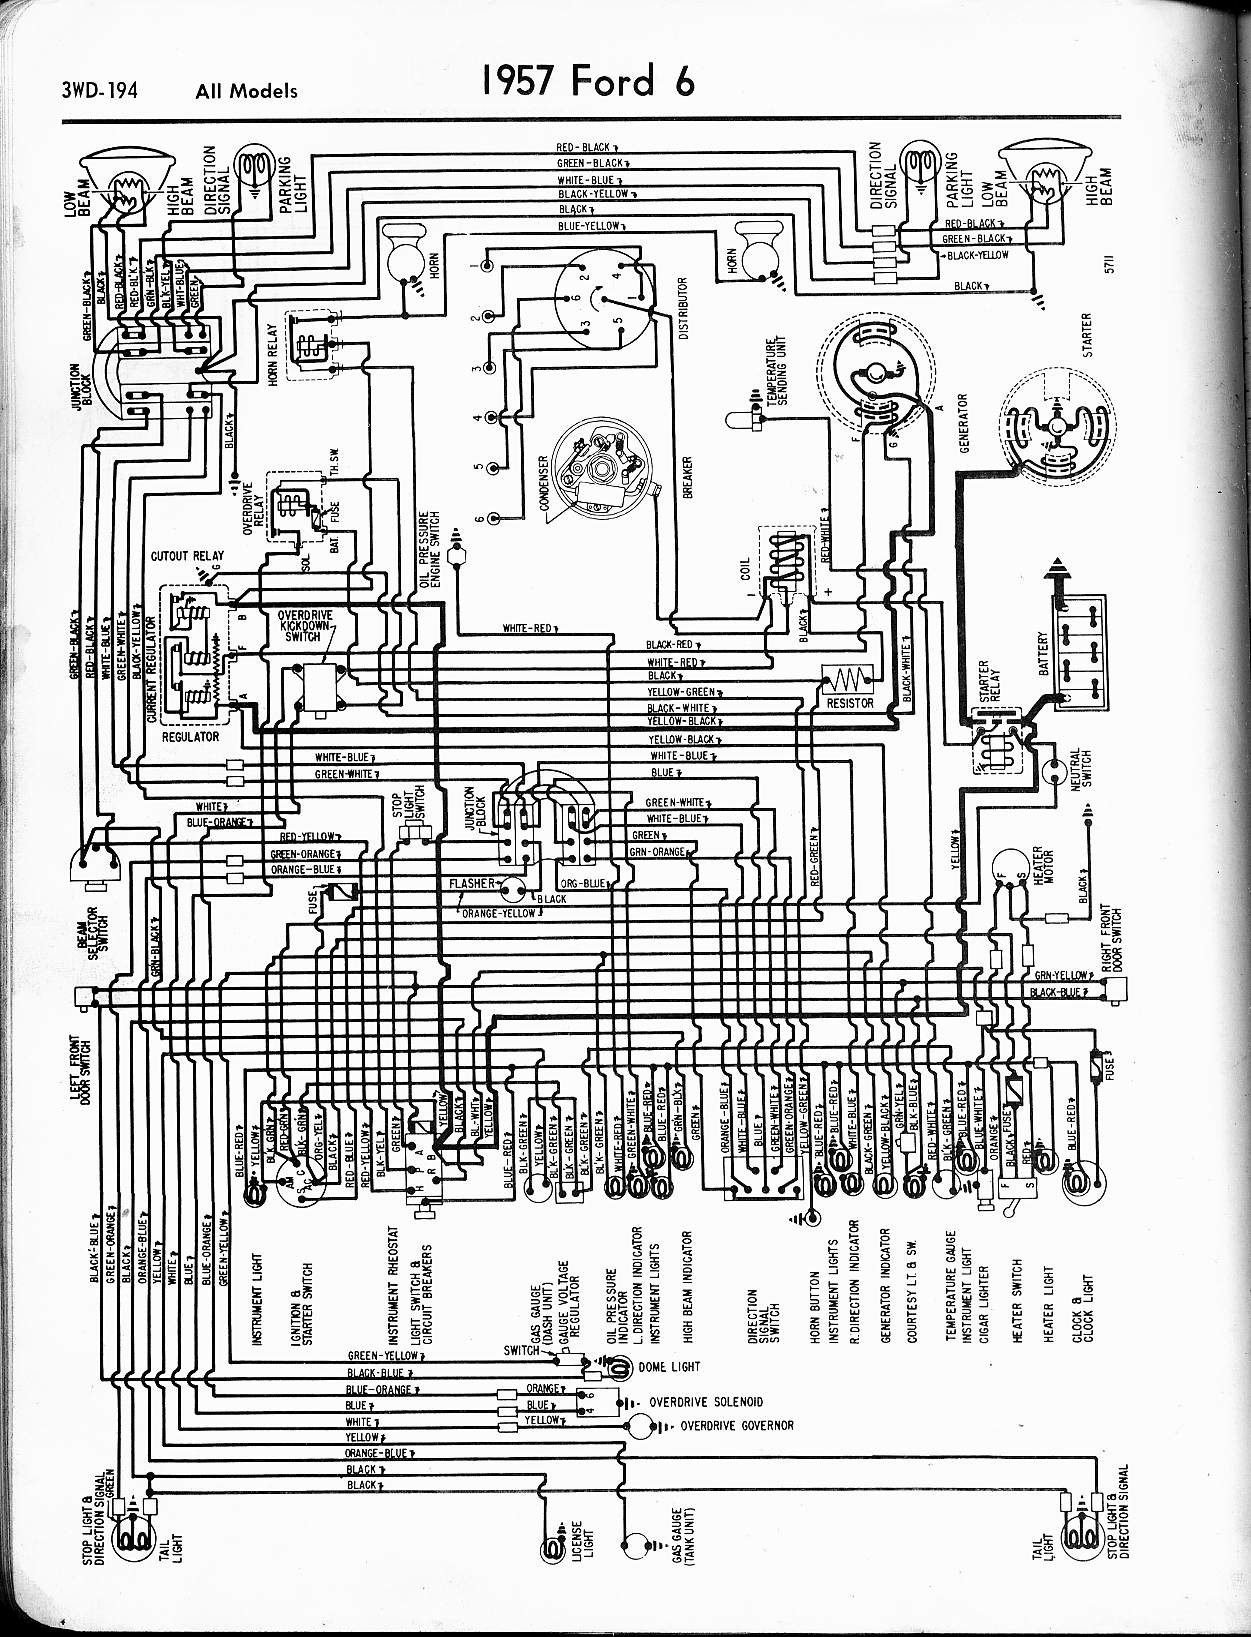 2008 Ford F450 Fuse Box Diagram Moreover Ford E 350 Wiring Diagram As